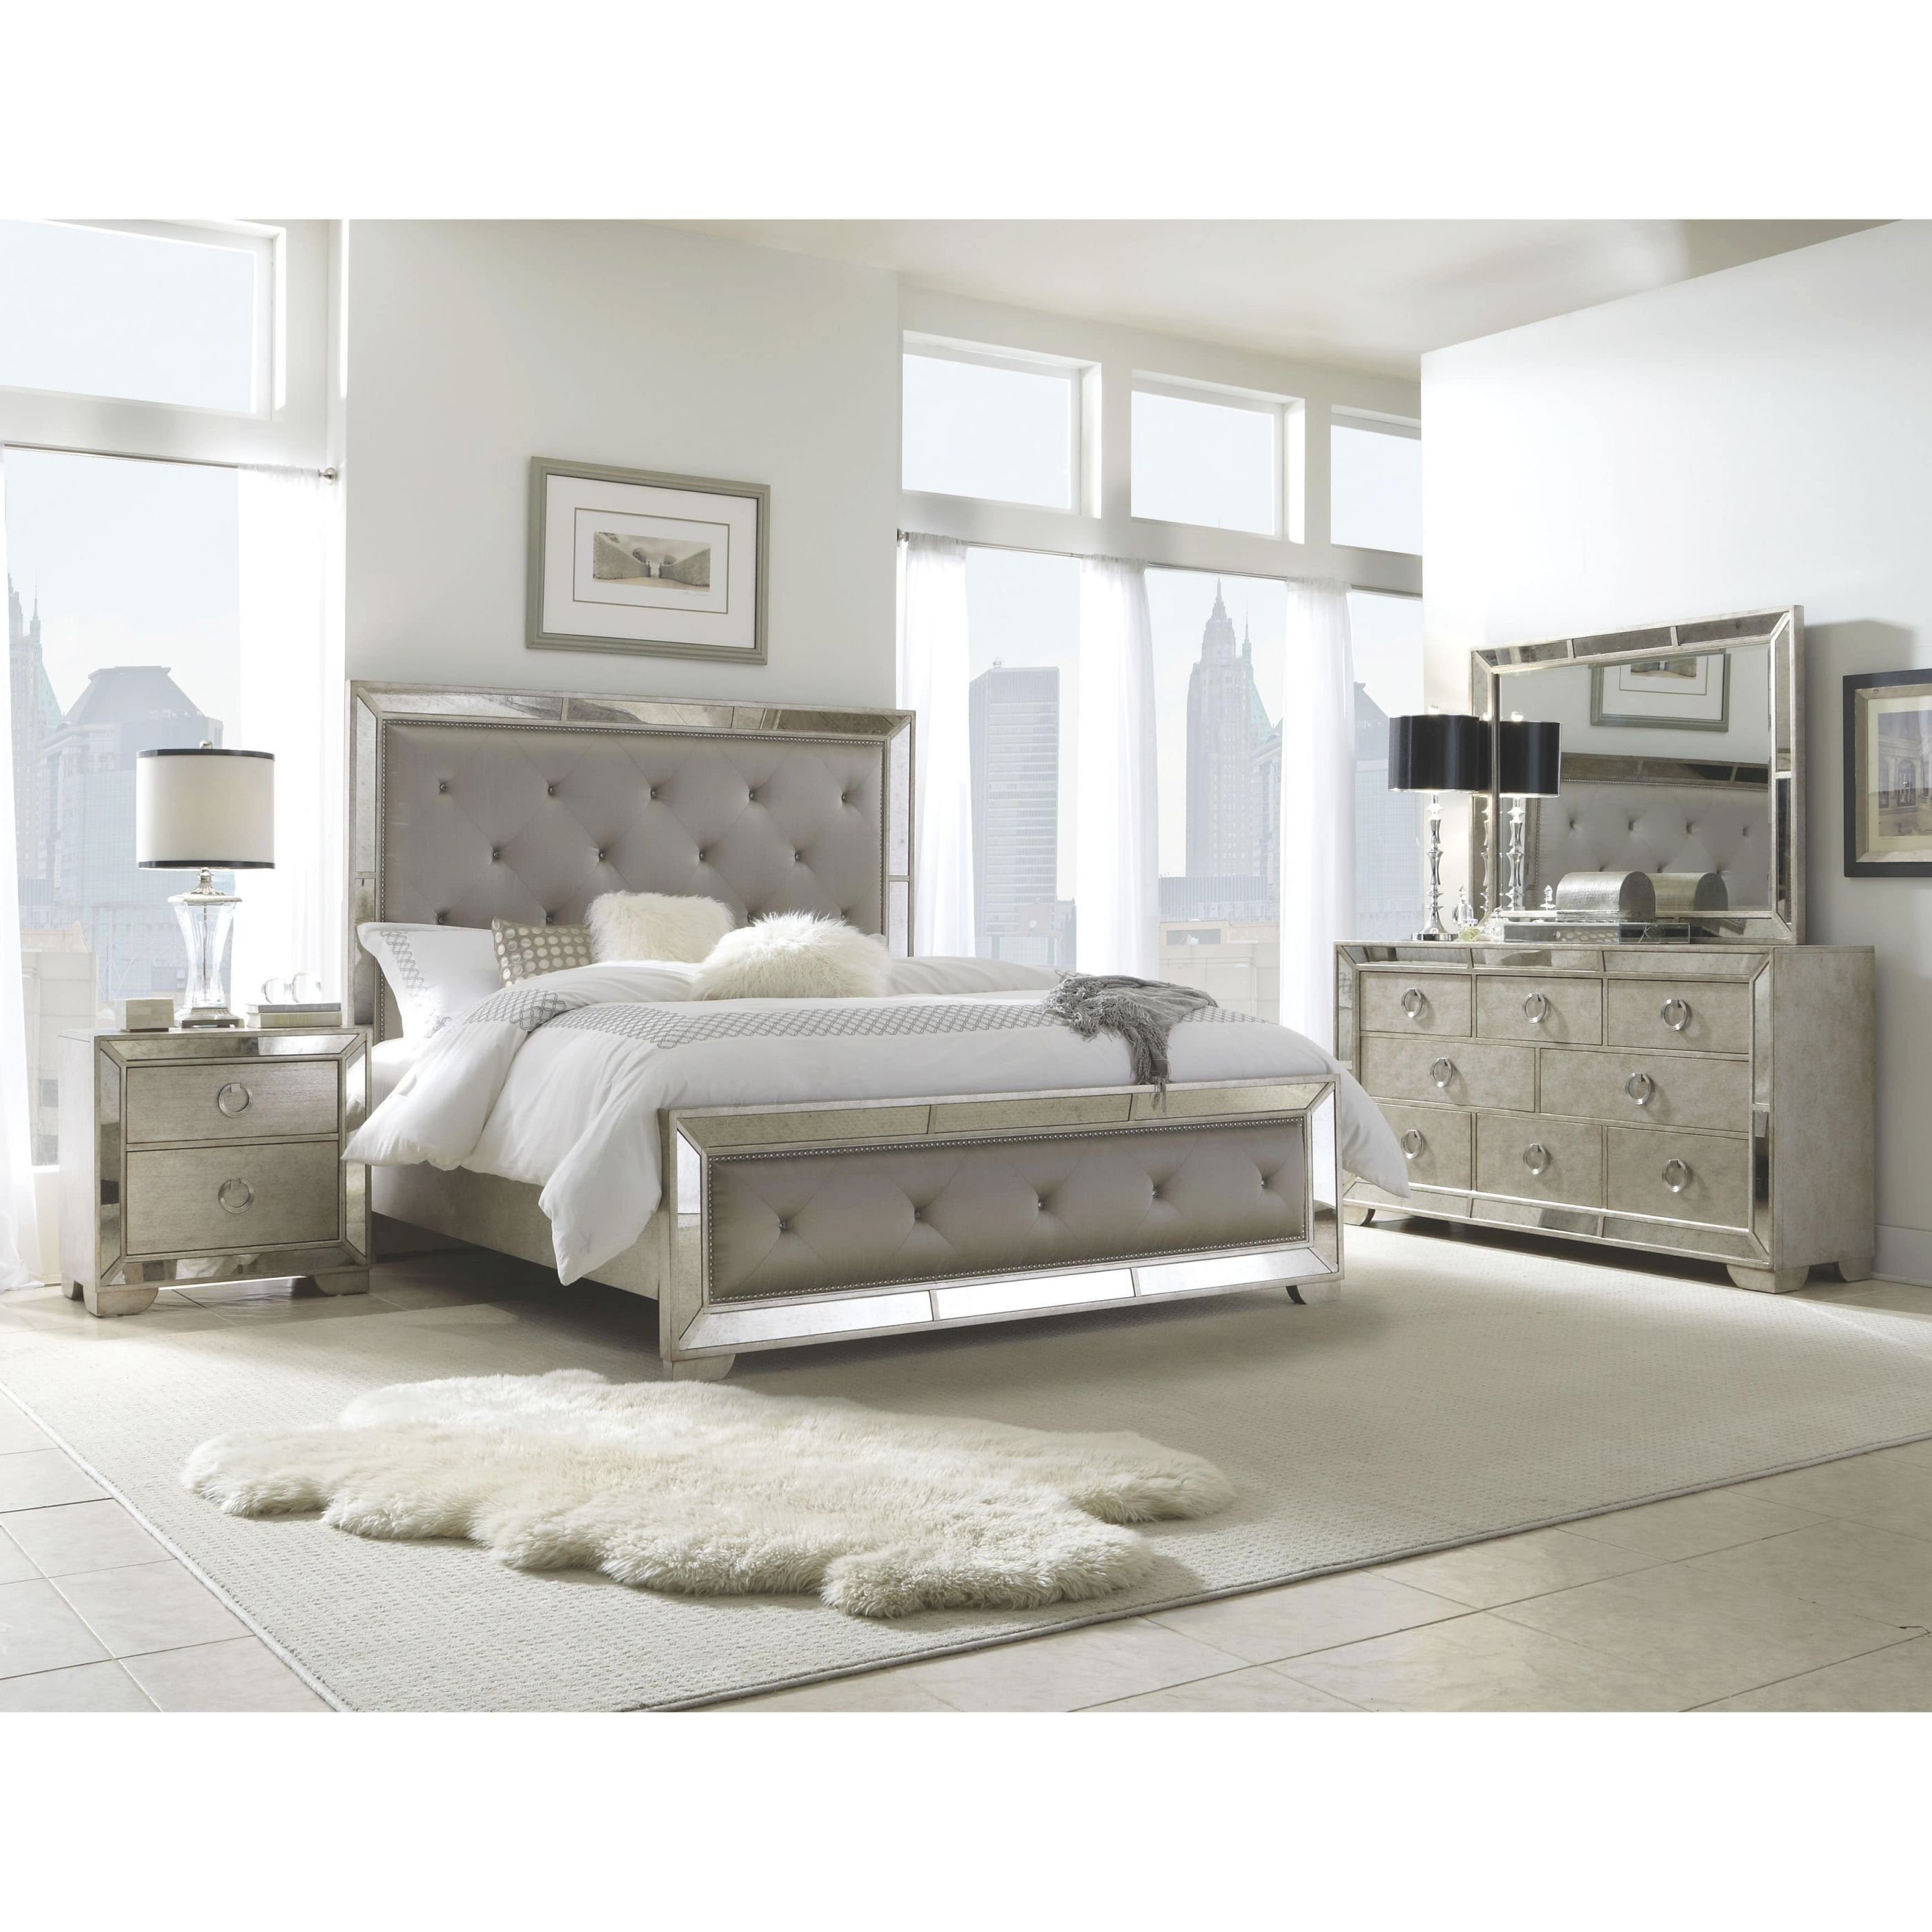 Celine 6-Piece Mirrored And Upholstered Tufted Queen-Size Bedroom Set regarding Beautiful Queen Size Bedroom Furniture Sets